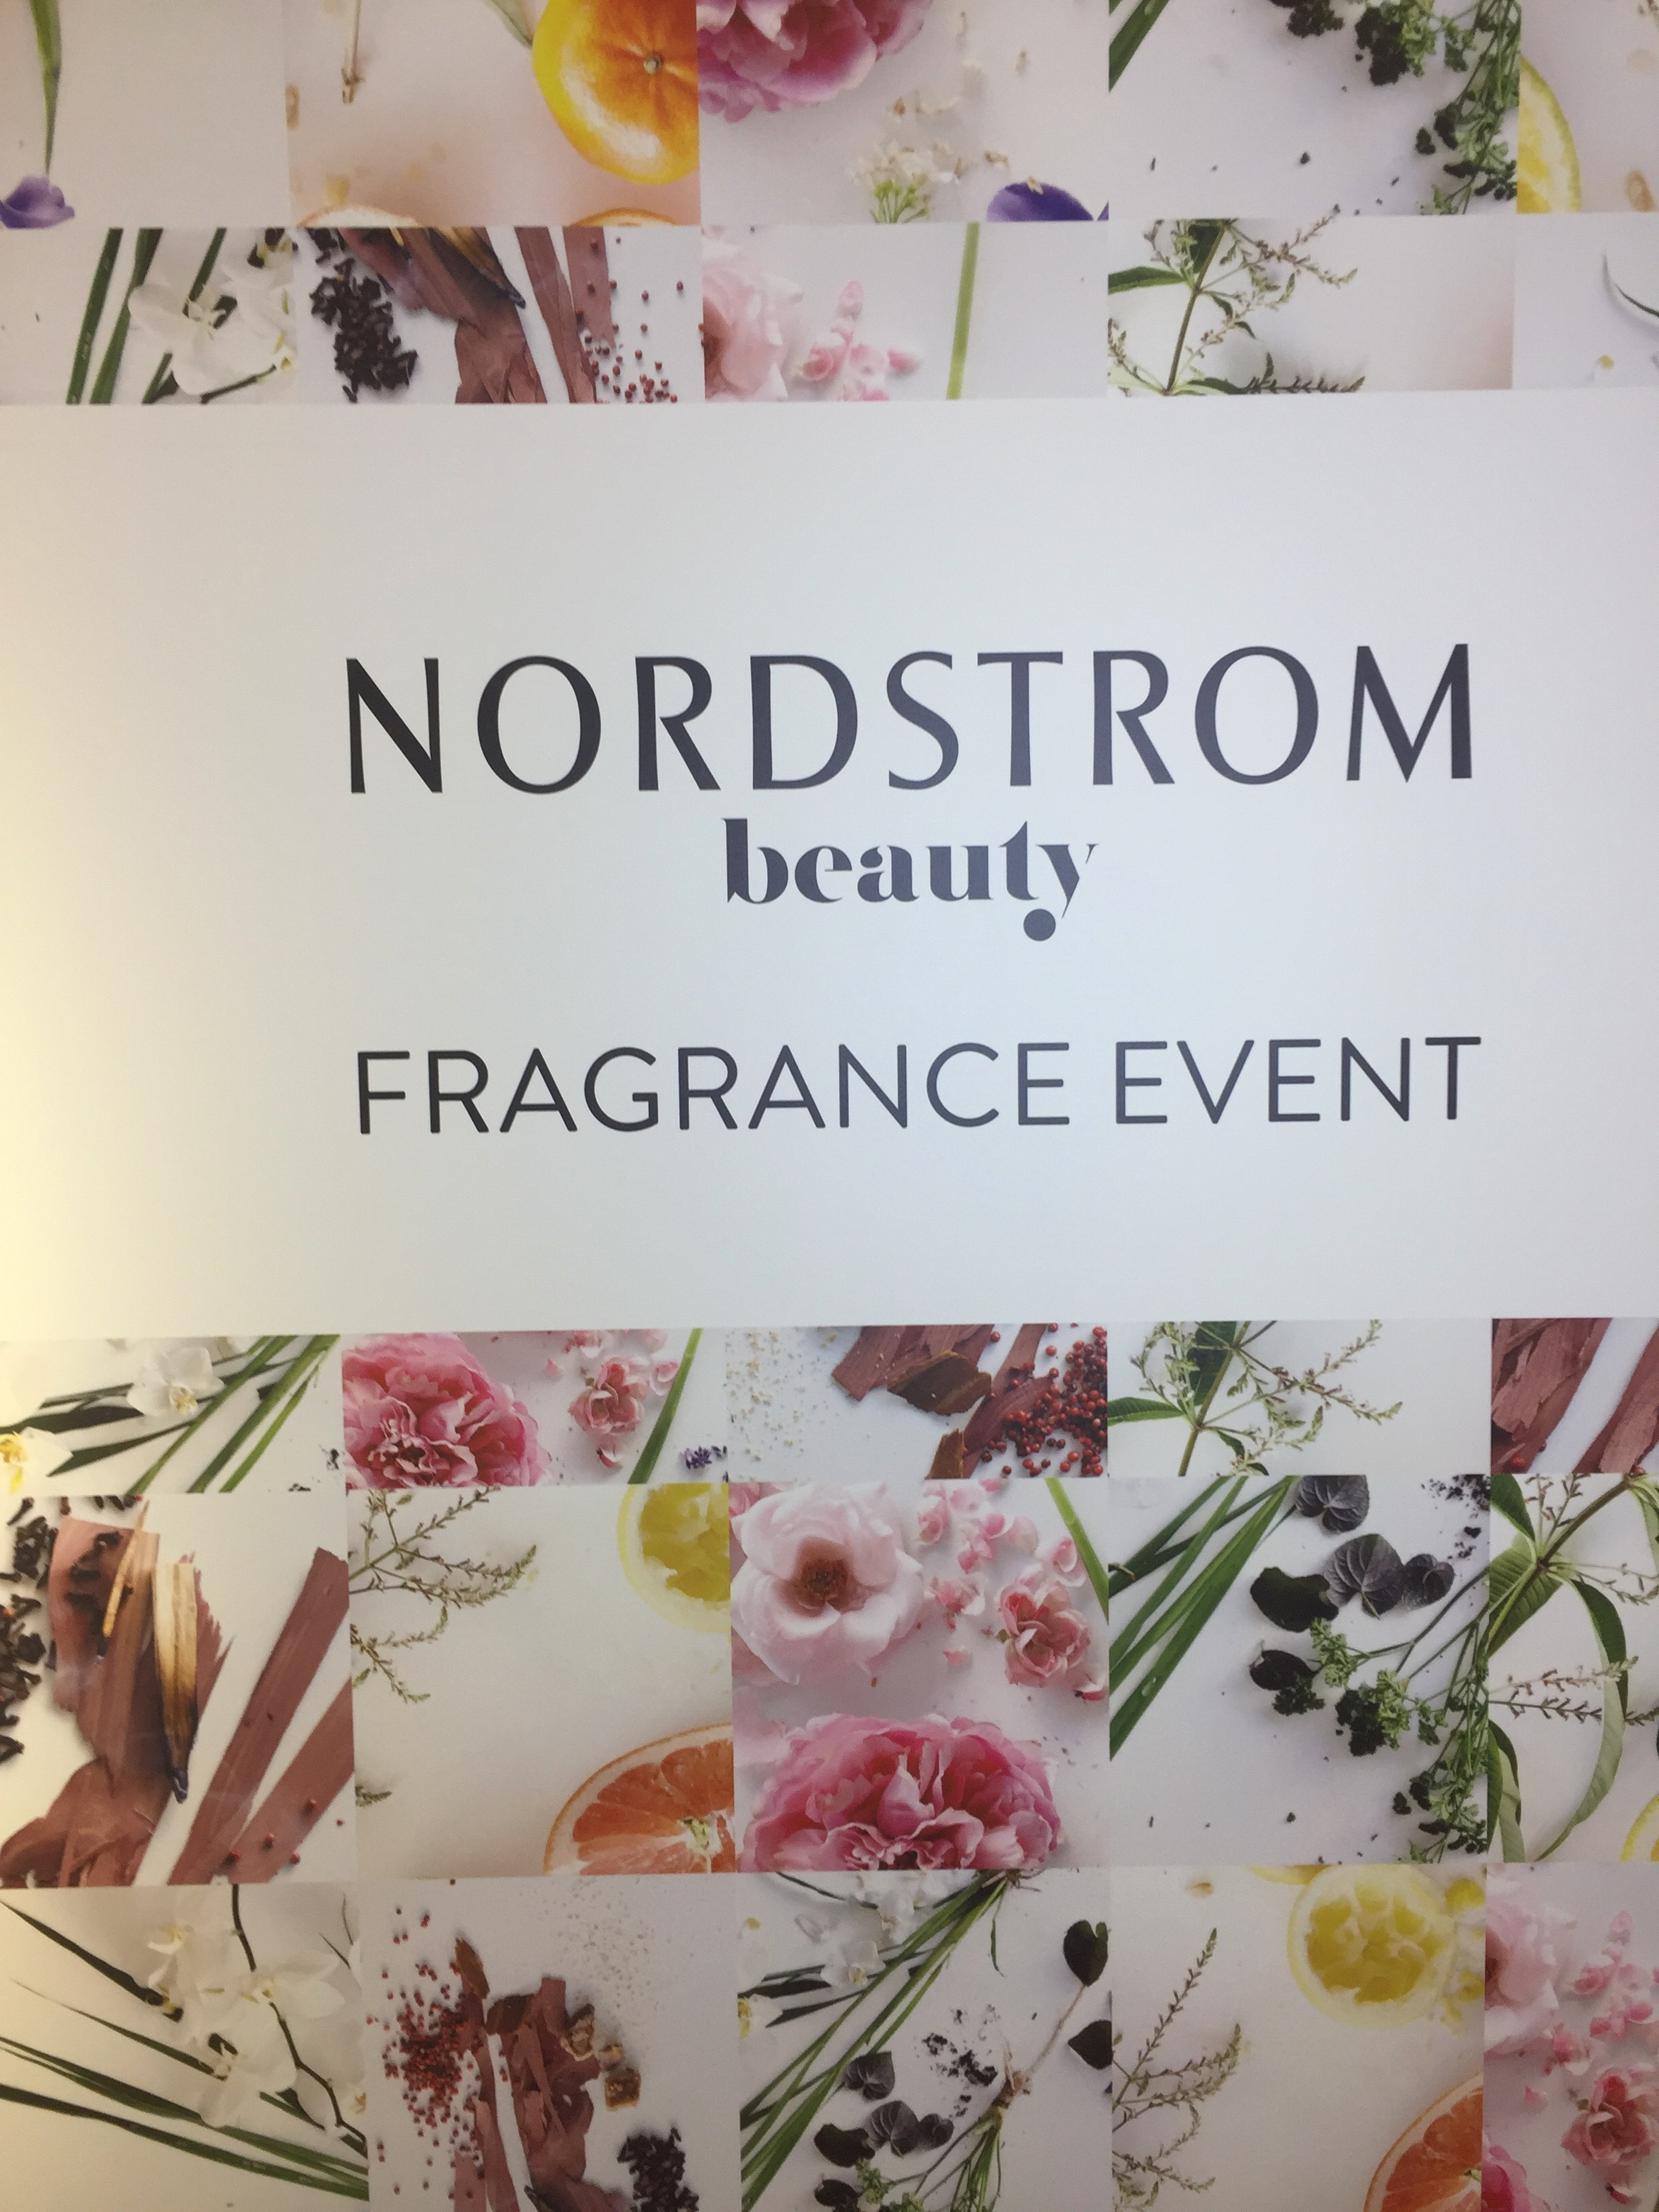 Nordstrom Scent Event Engraving